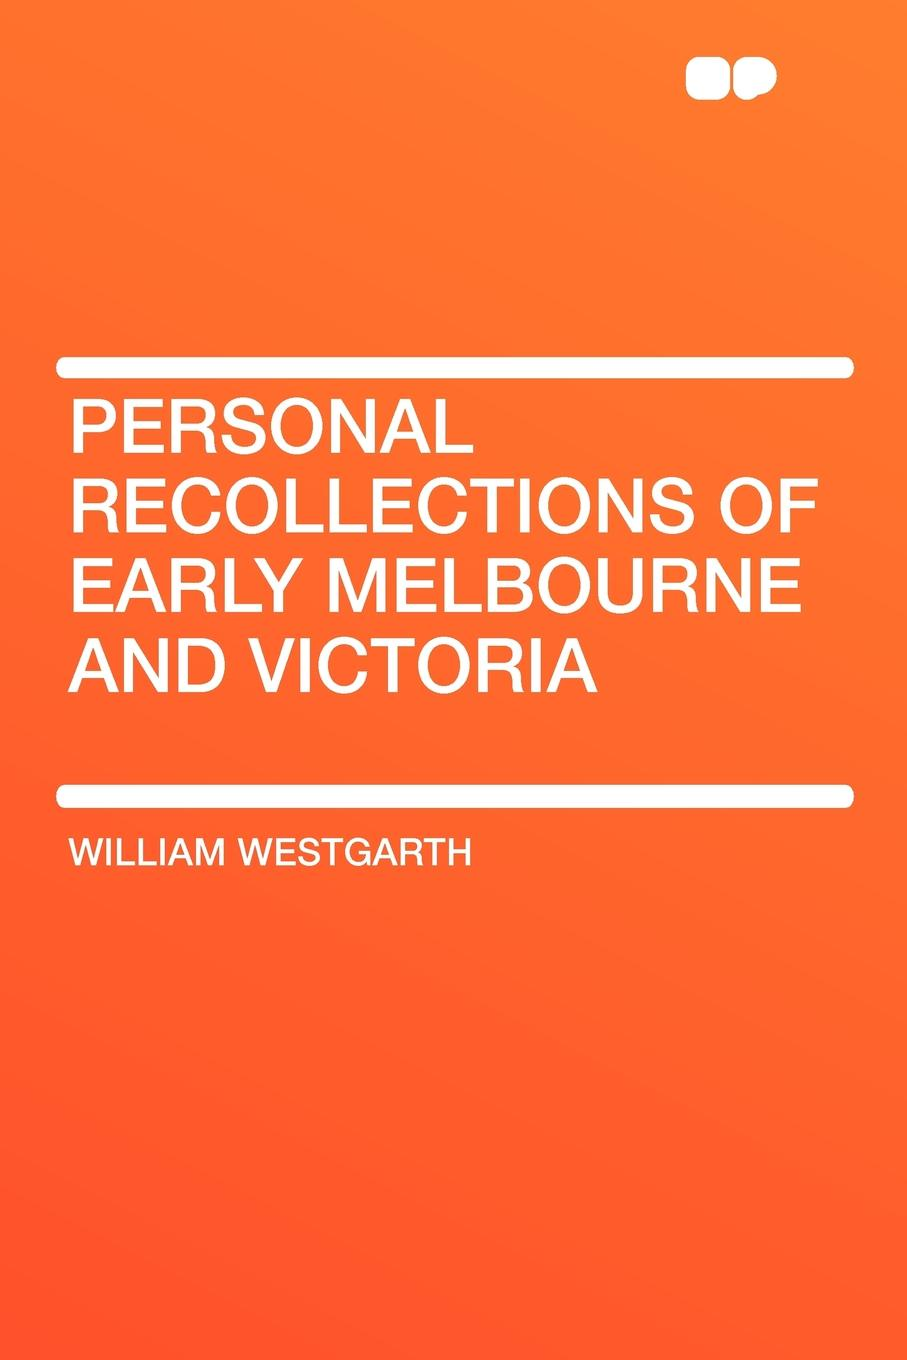 William Westgarth Personal Recollections of Early Melbourne and Victoria train melbourne